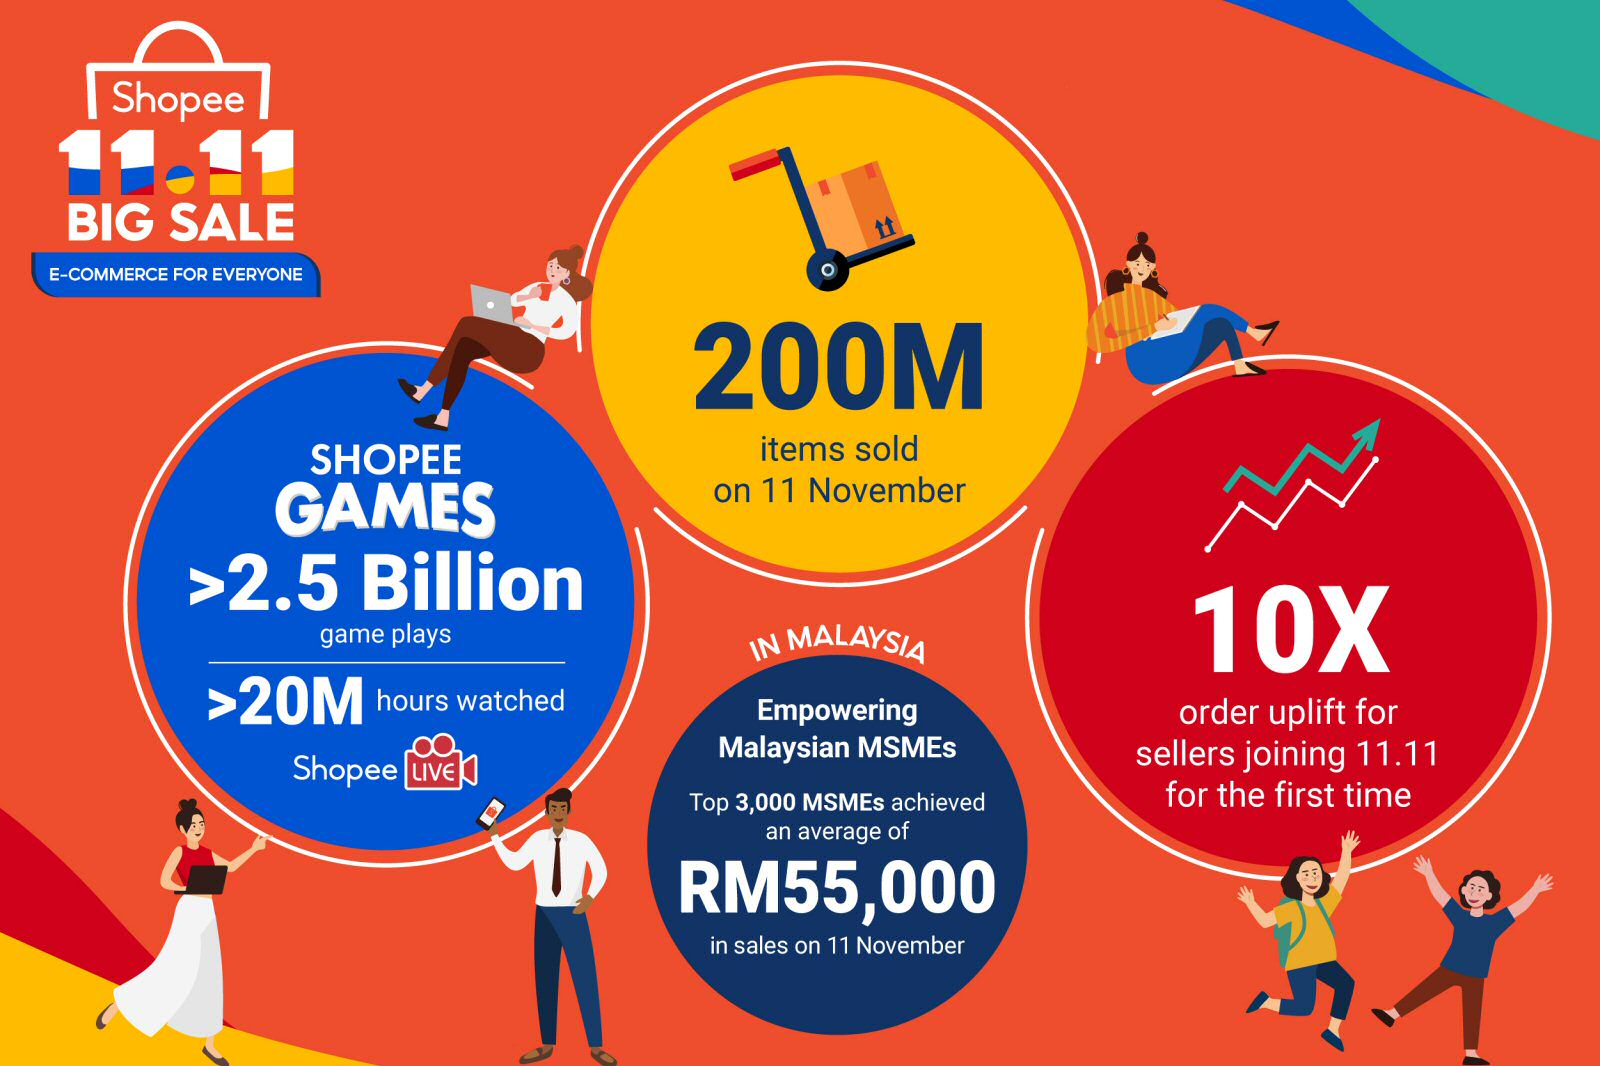 Shopee 11.11.2020 Big Sale Infographic